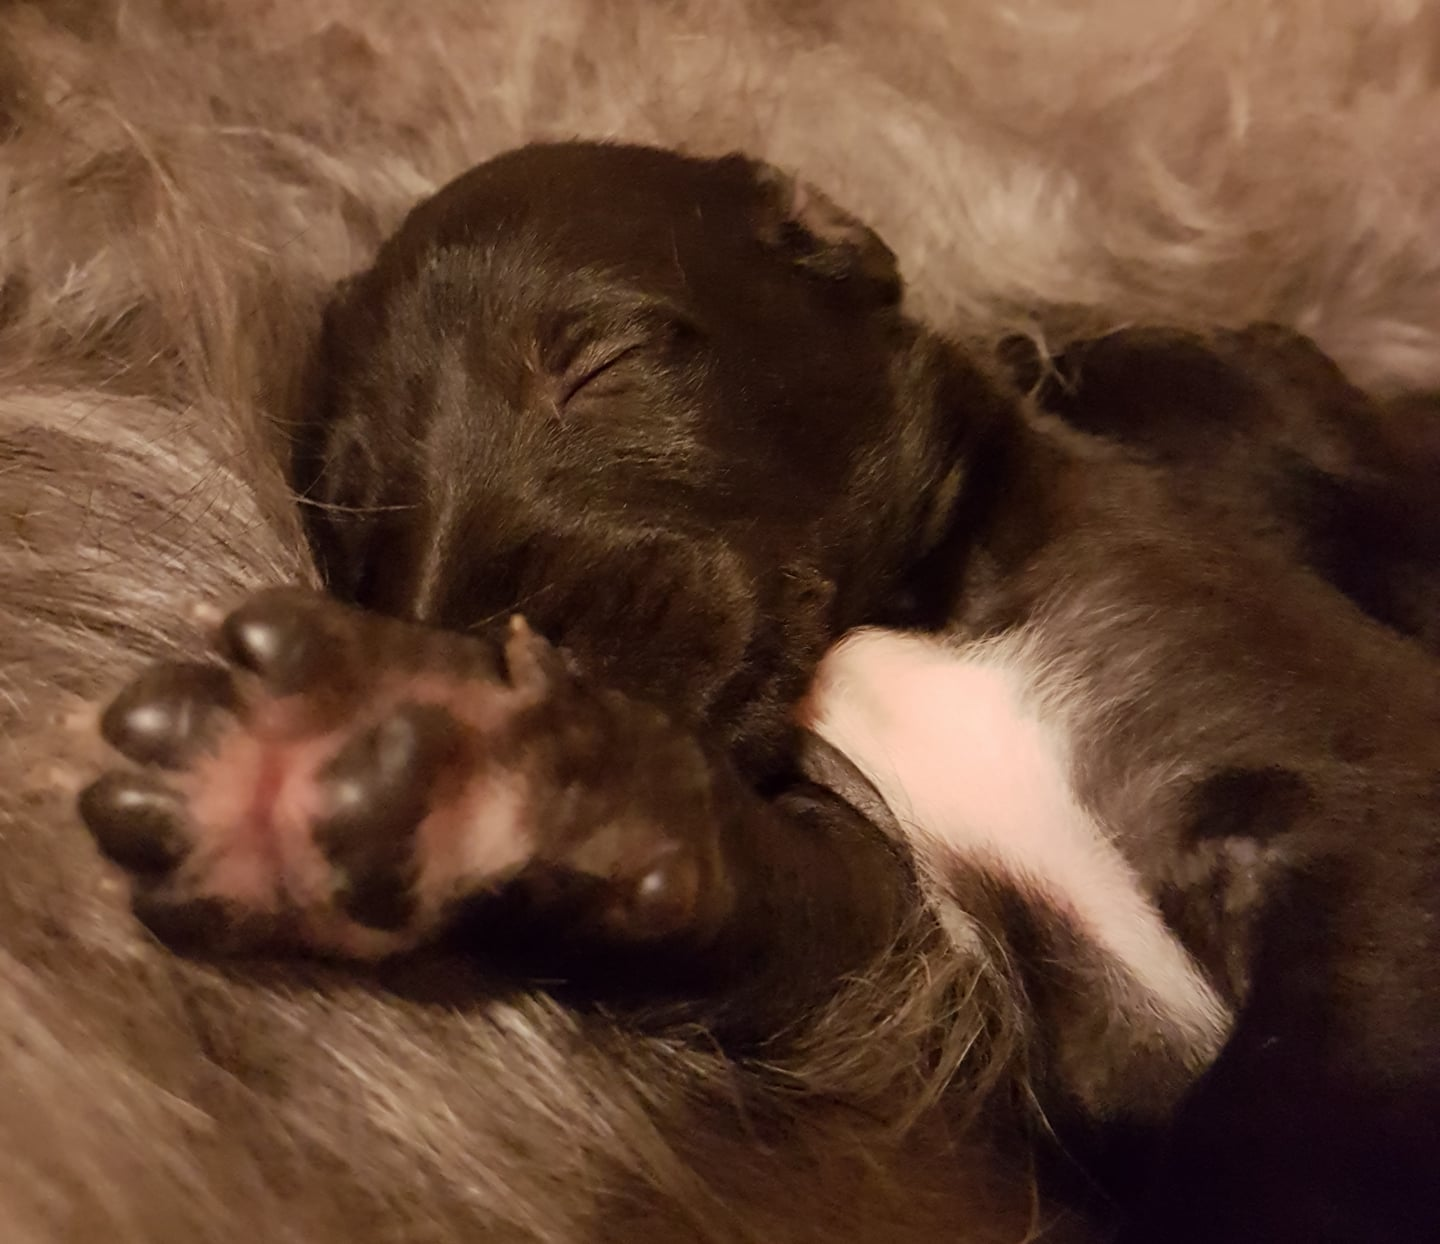 We have deerhound puppies